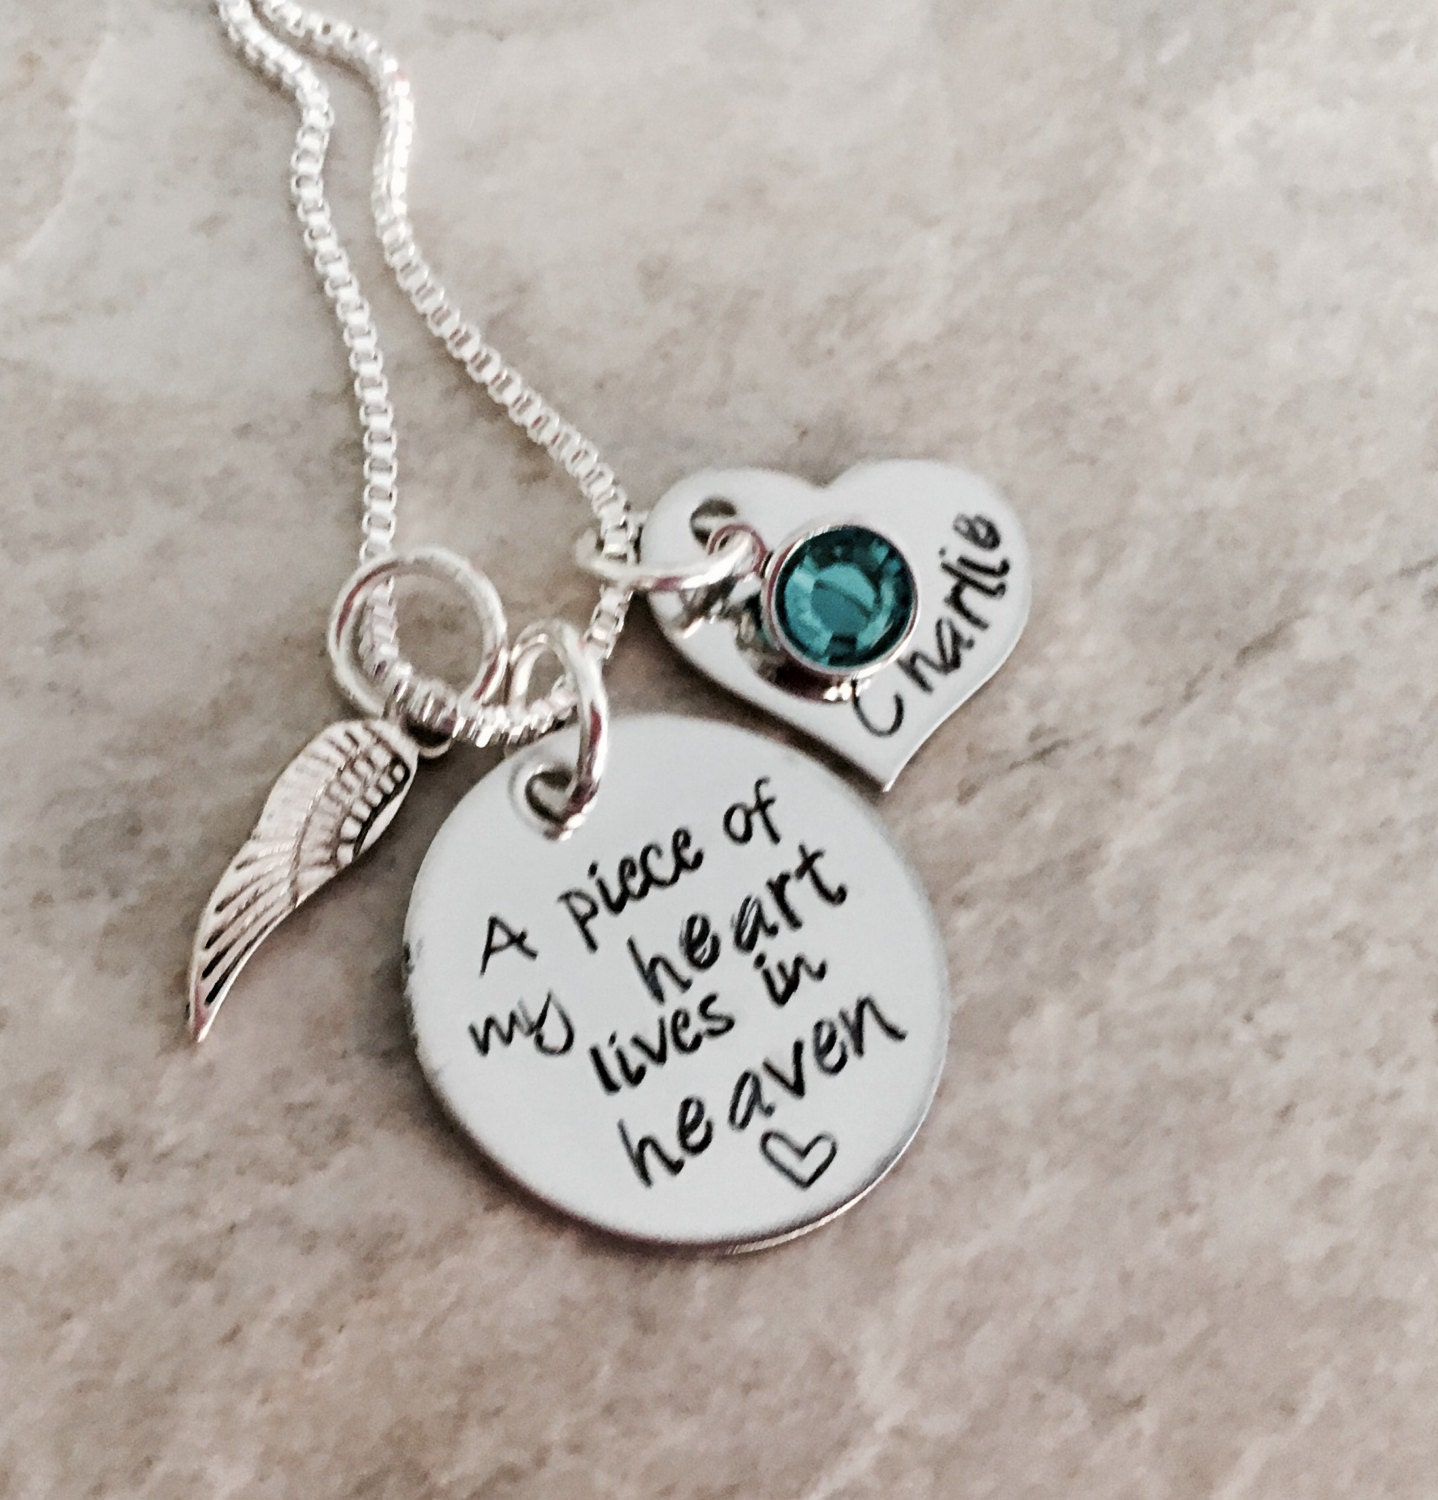 gift link jewelry products of pet loss memorial necklace remembrance